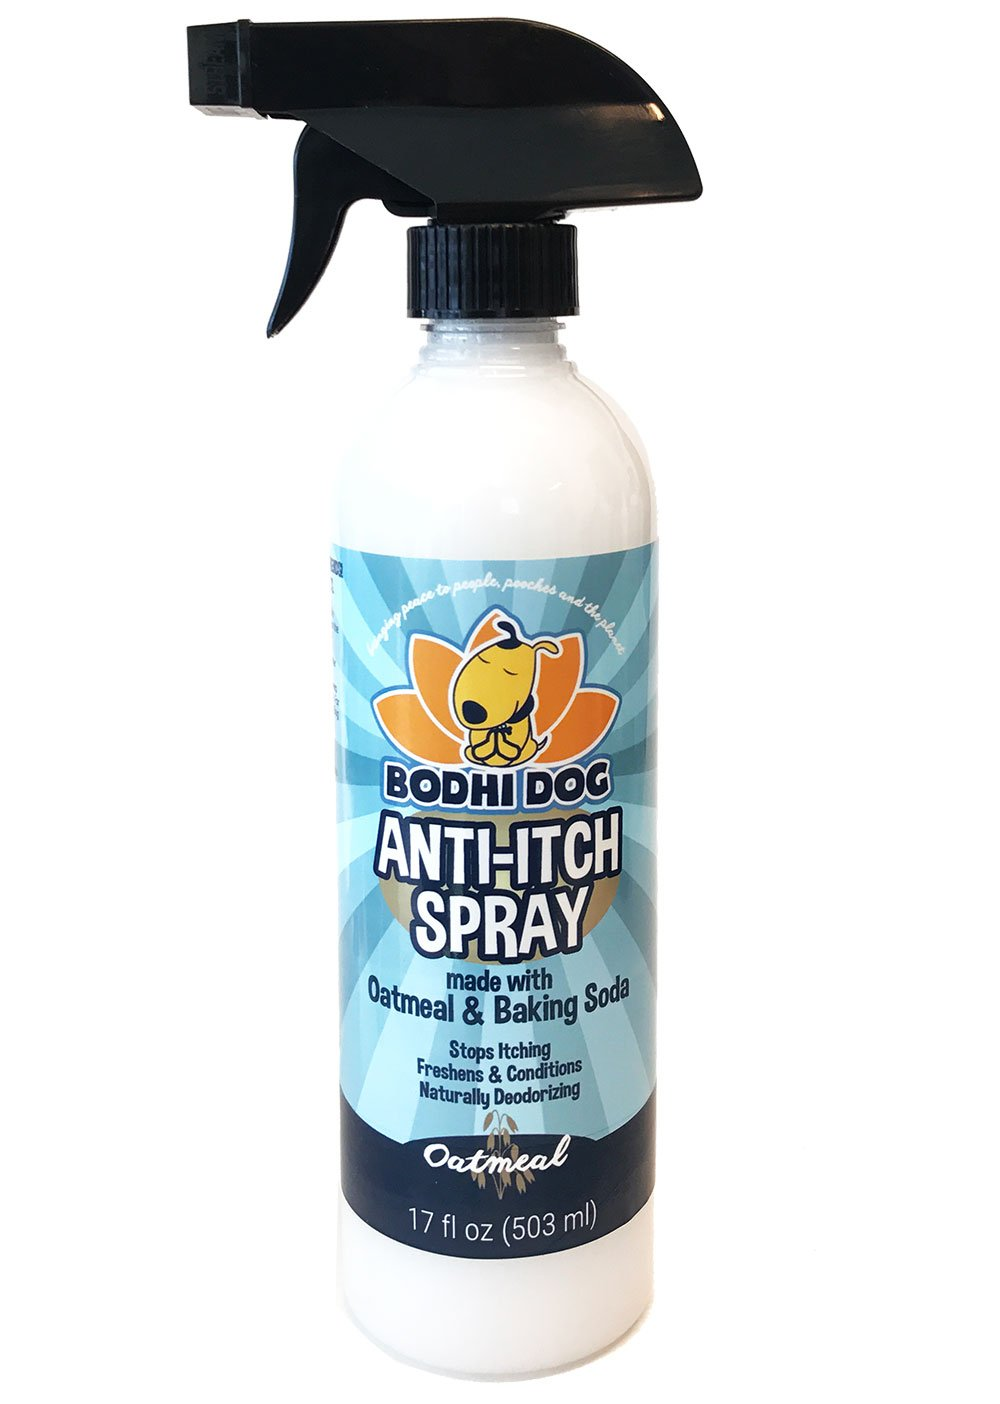 NEW Anti Itch Oatmeal Spray for Dogs and Cats | 100% All Natural Hypoallergenic Soothing Relief for Dry, Itchy, Bitten or Allergic Damaged Skin | Vet and Pet Approved Treatment - 1 Bottle 17oz (503ml)